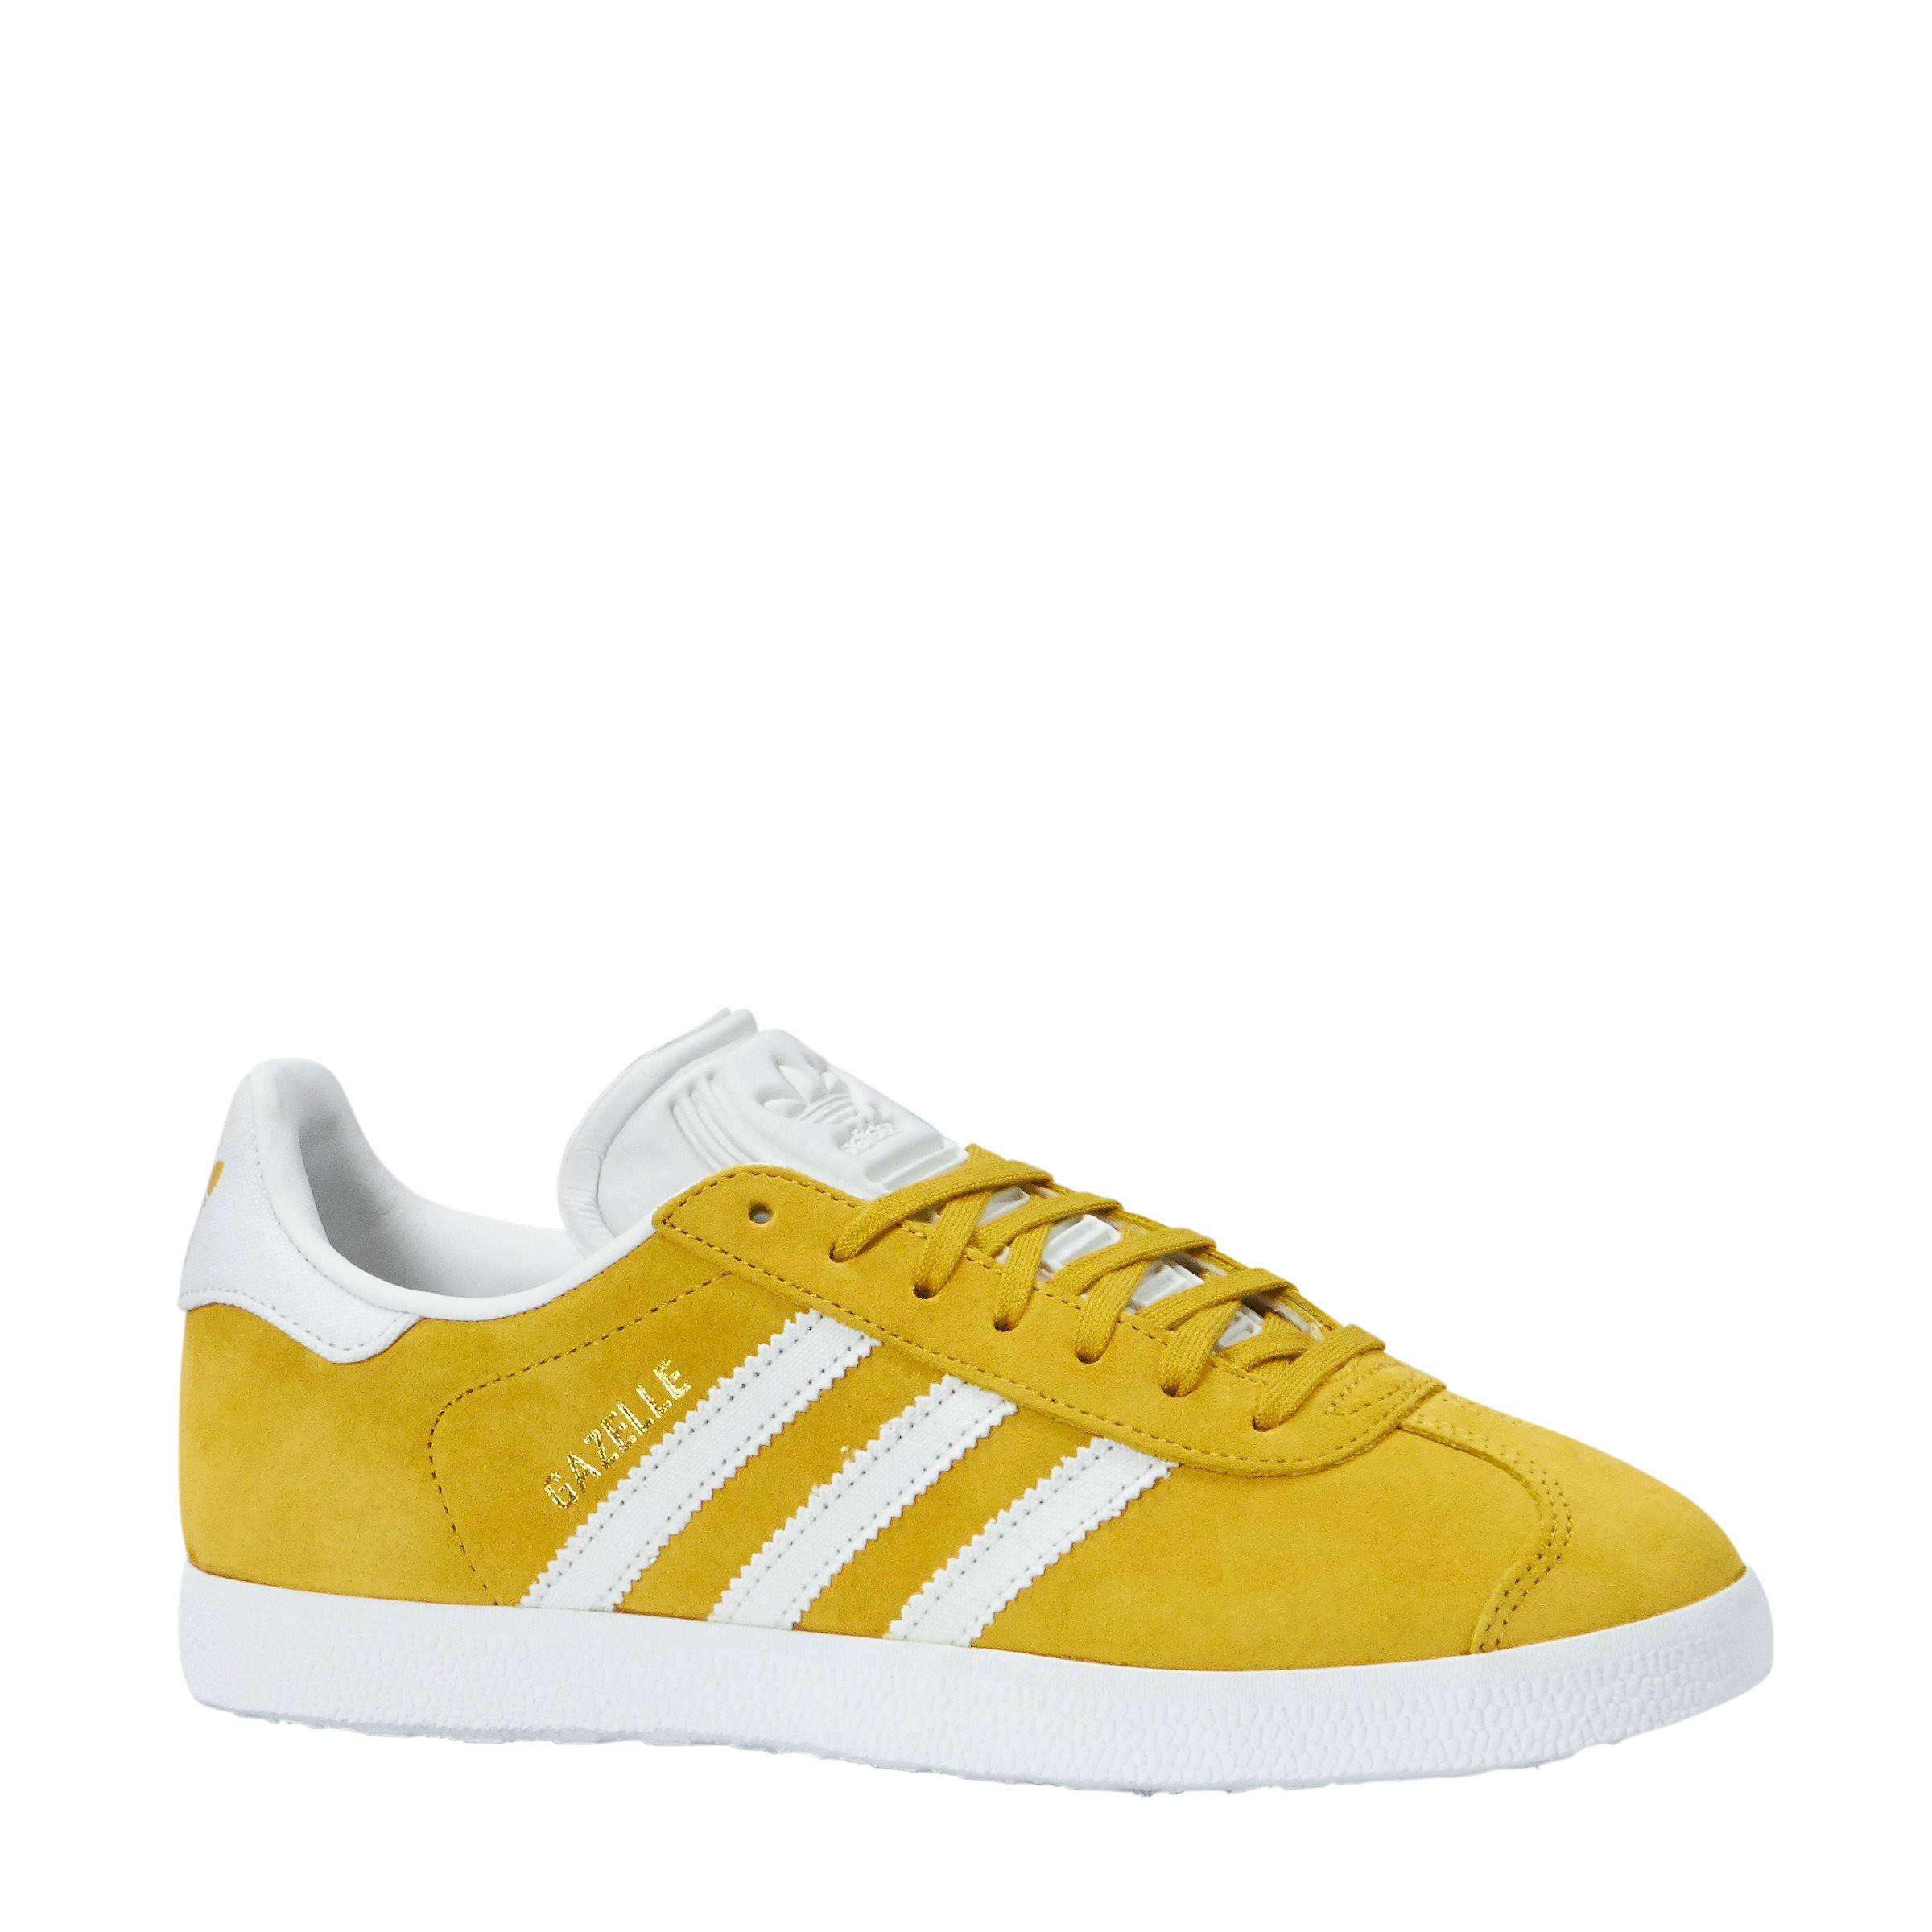 adidas Originals Gazelle sneakers okergeel/wit | wehkamp